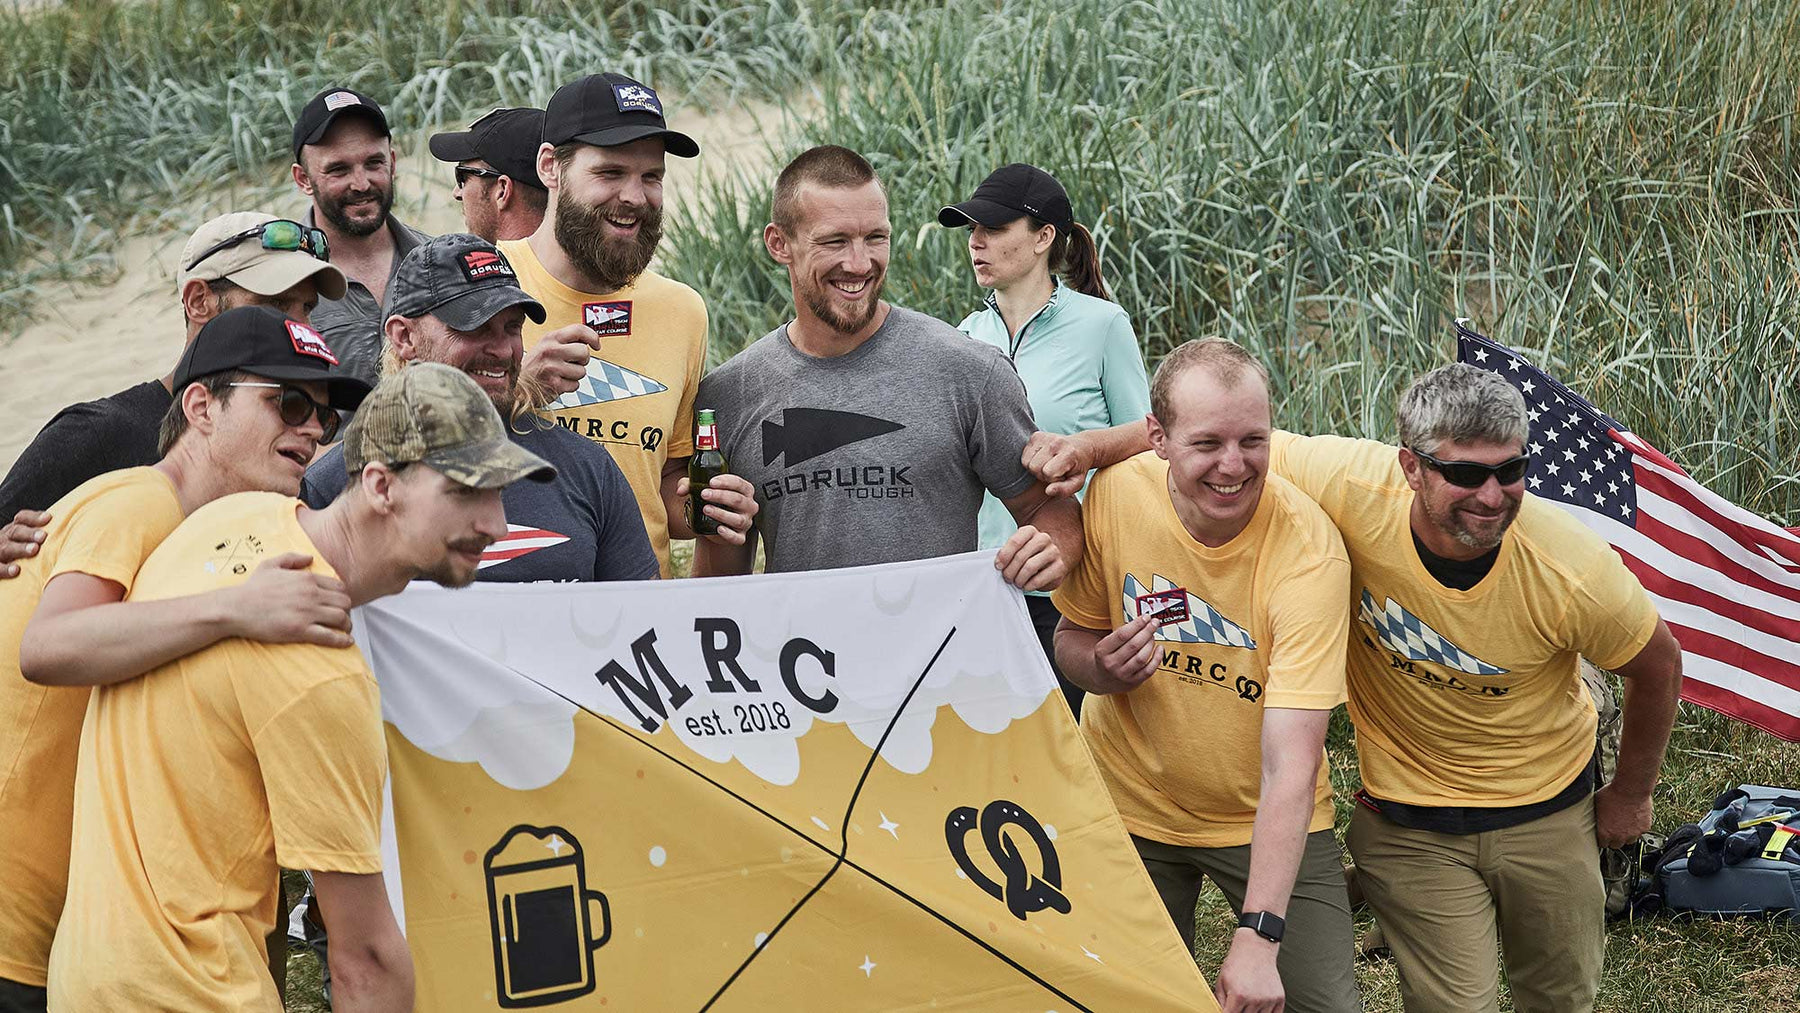 Munich GORUCK Club at Normandy GORUCK Challenge 2019